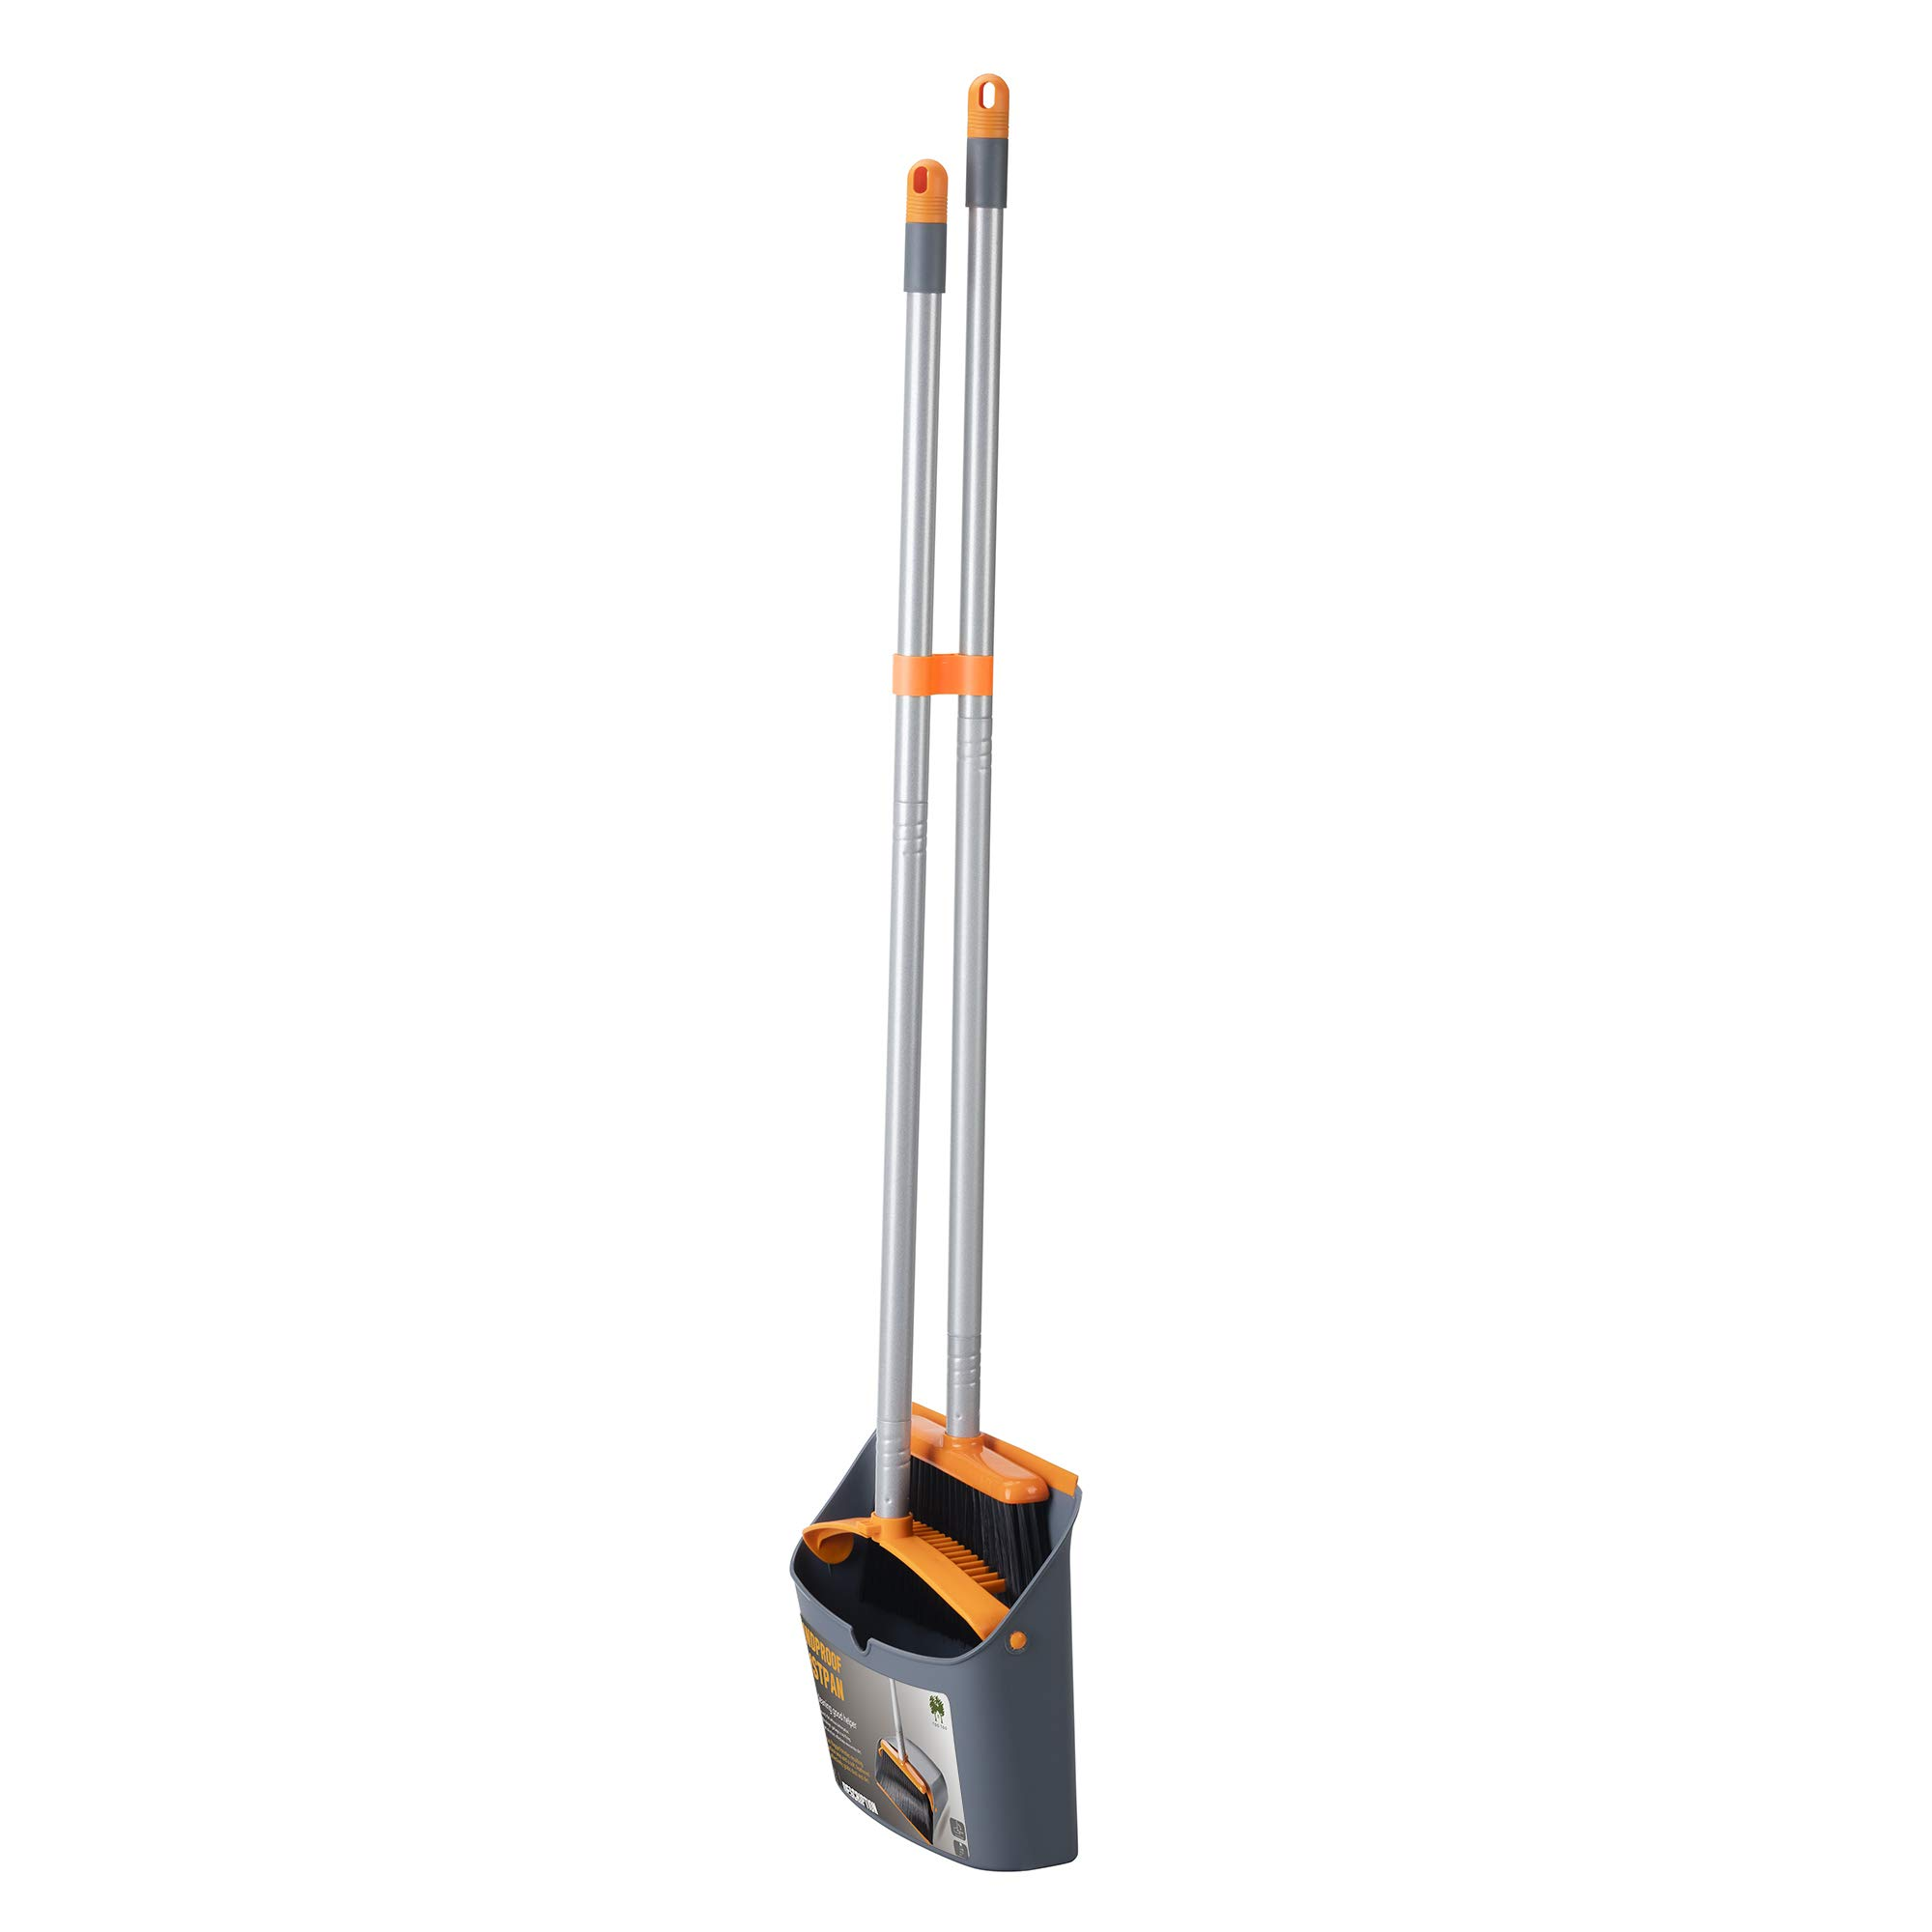 TooToo Broom and Dustpan Set, Sweep Set, Upright Broom and Dustpan Combo with 40''/54'' Long Extendable Handle for Household Cleaning Sweeping, Orange and Dark Grey by TooToo (Image #3)